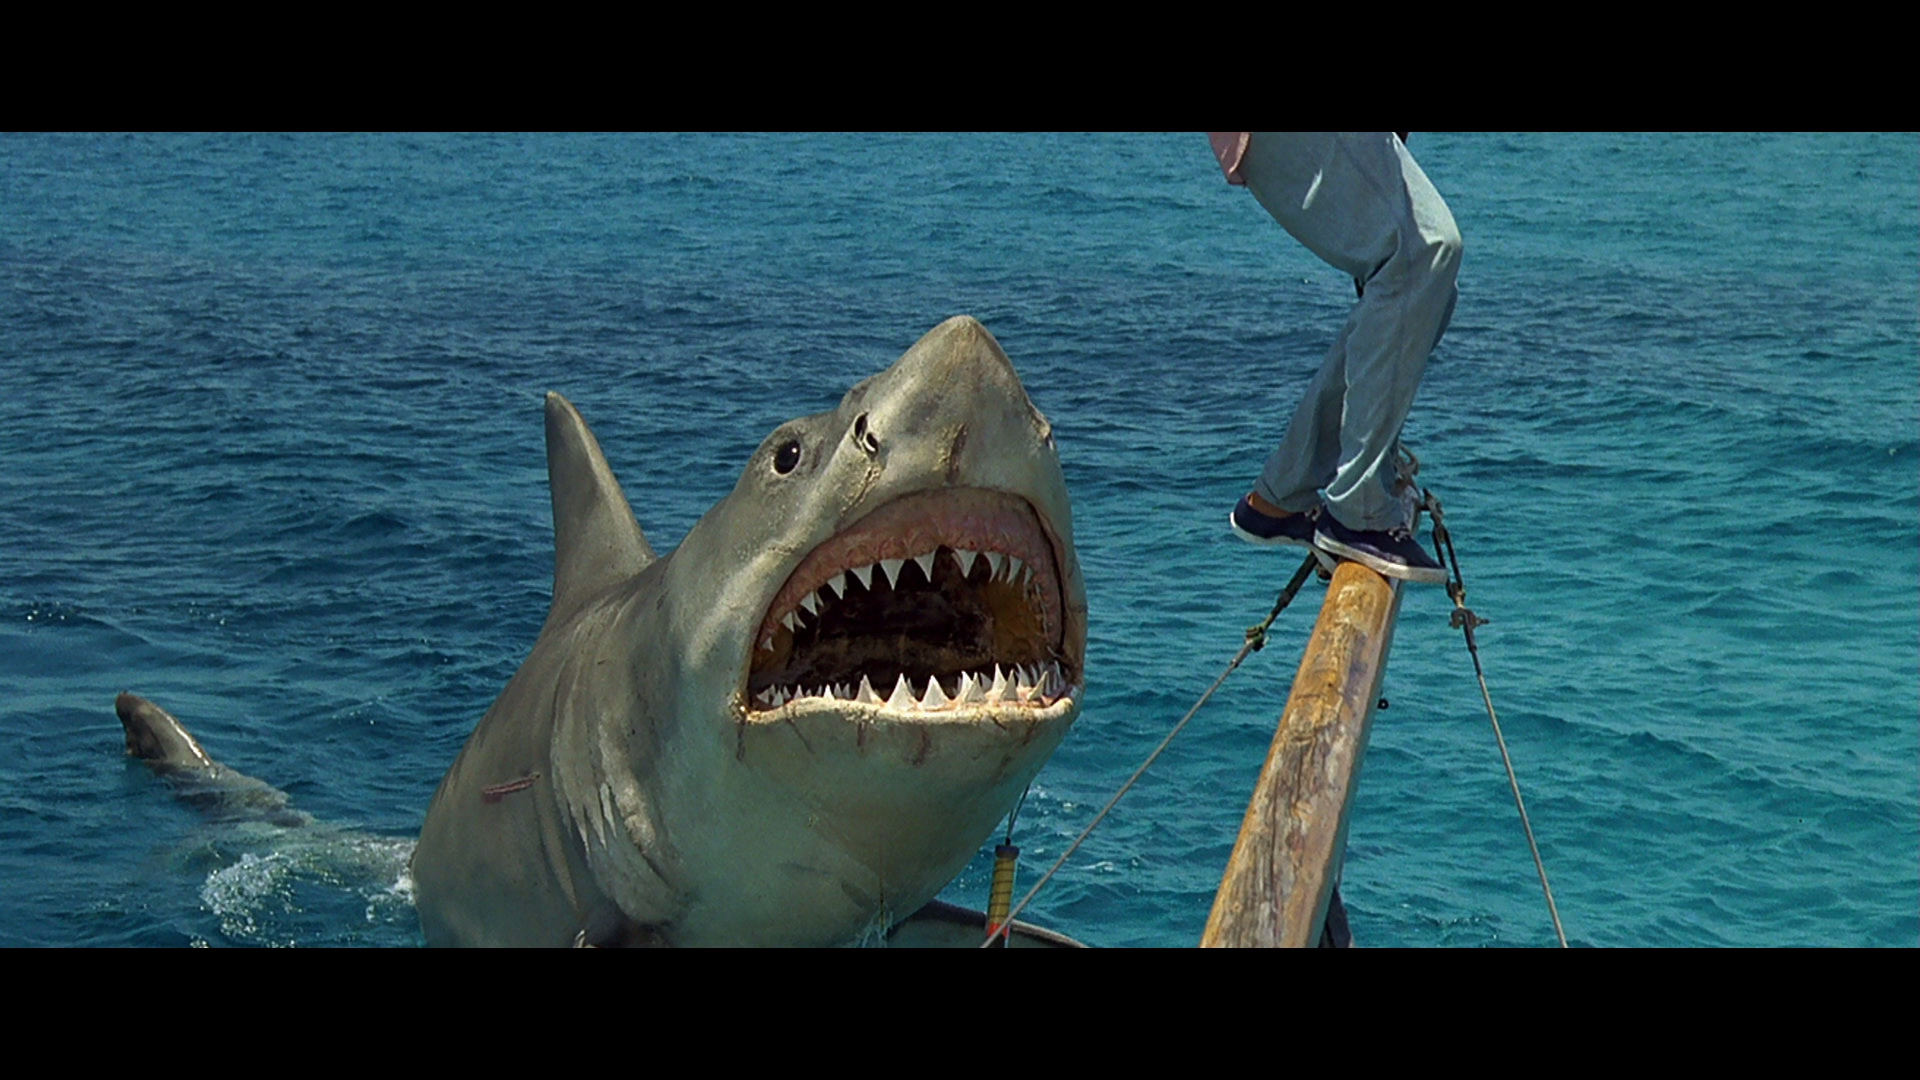 Jaws: The Revenge Blu-ray Review - DoBlu.com